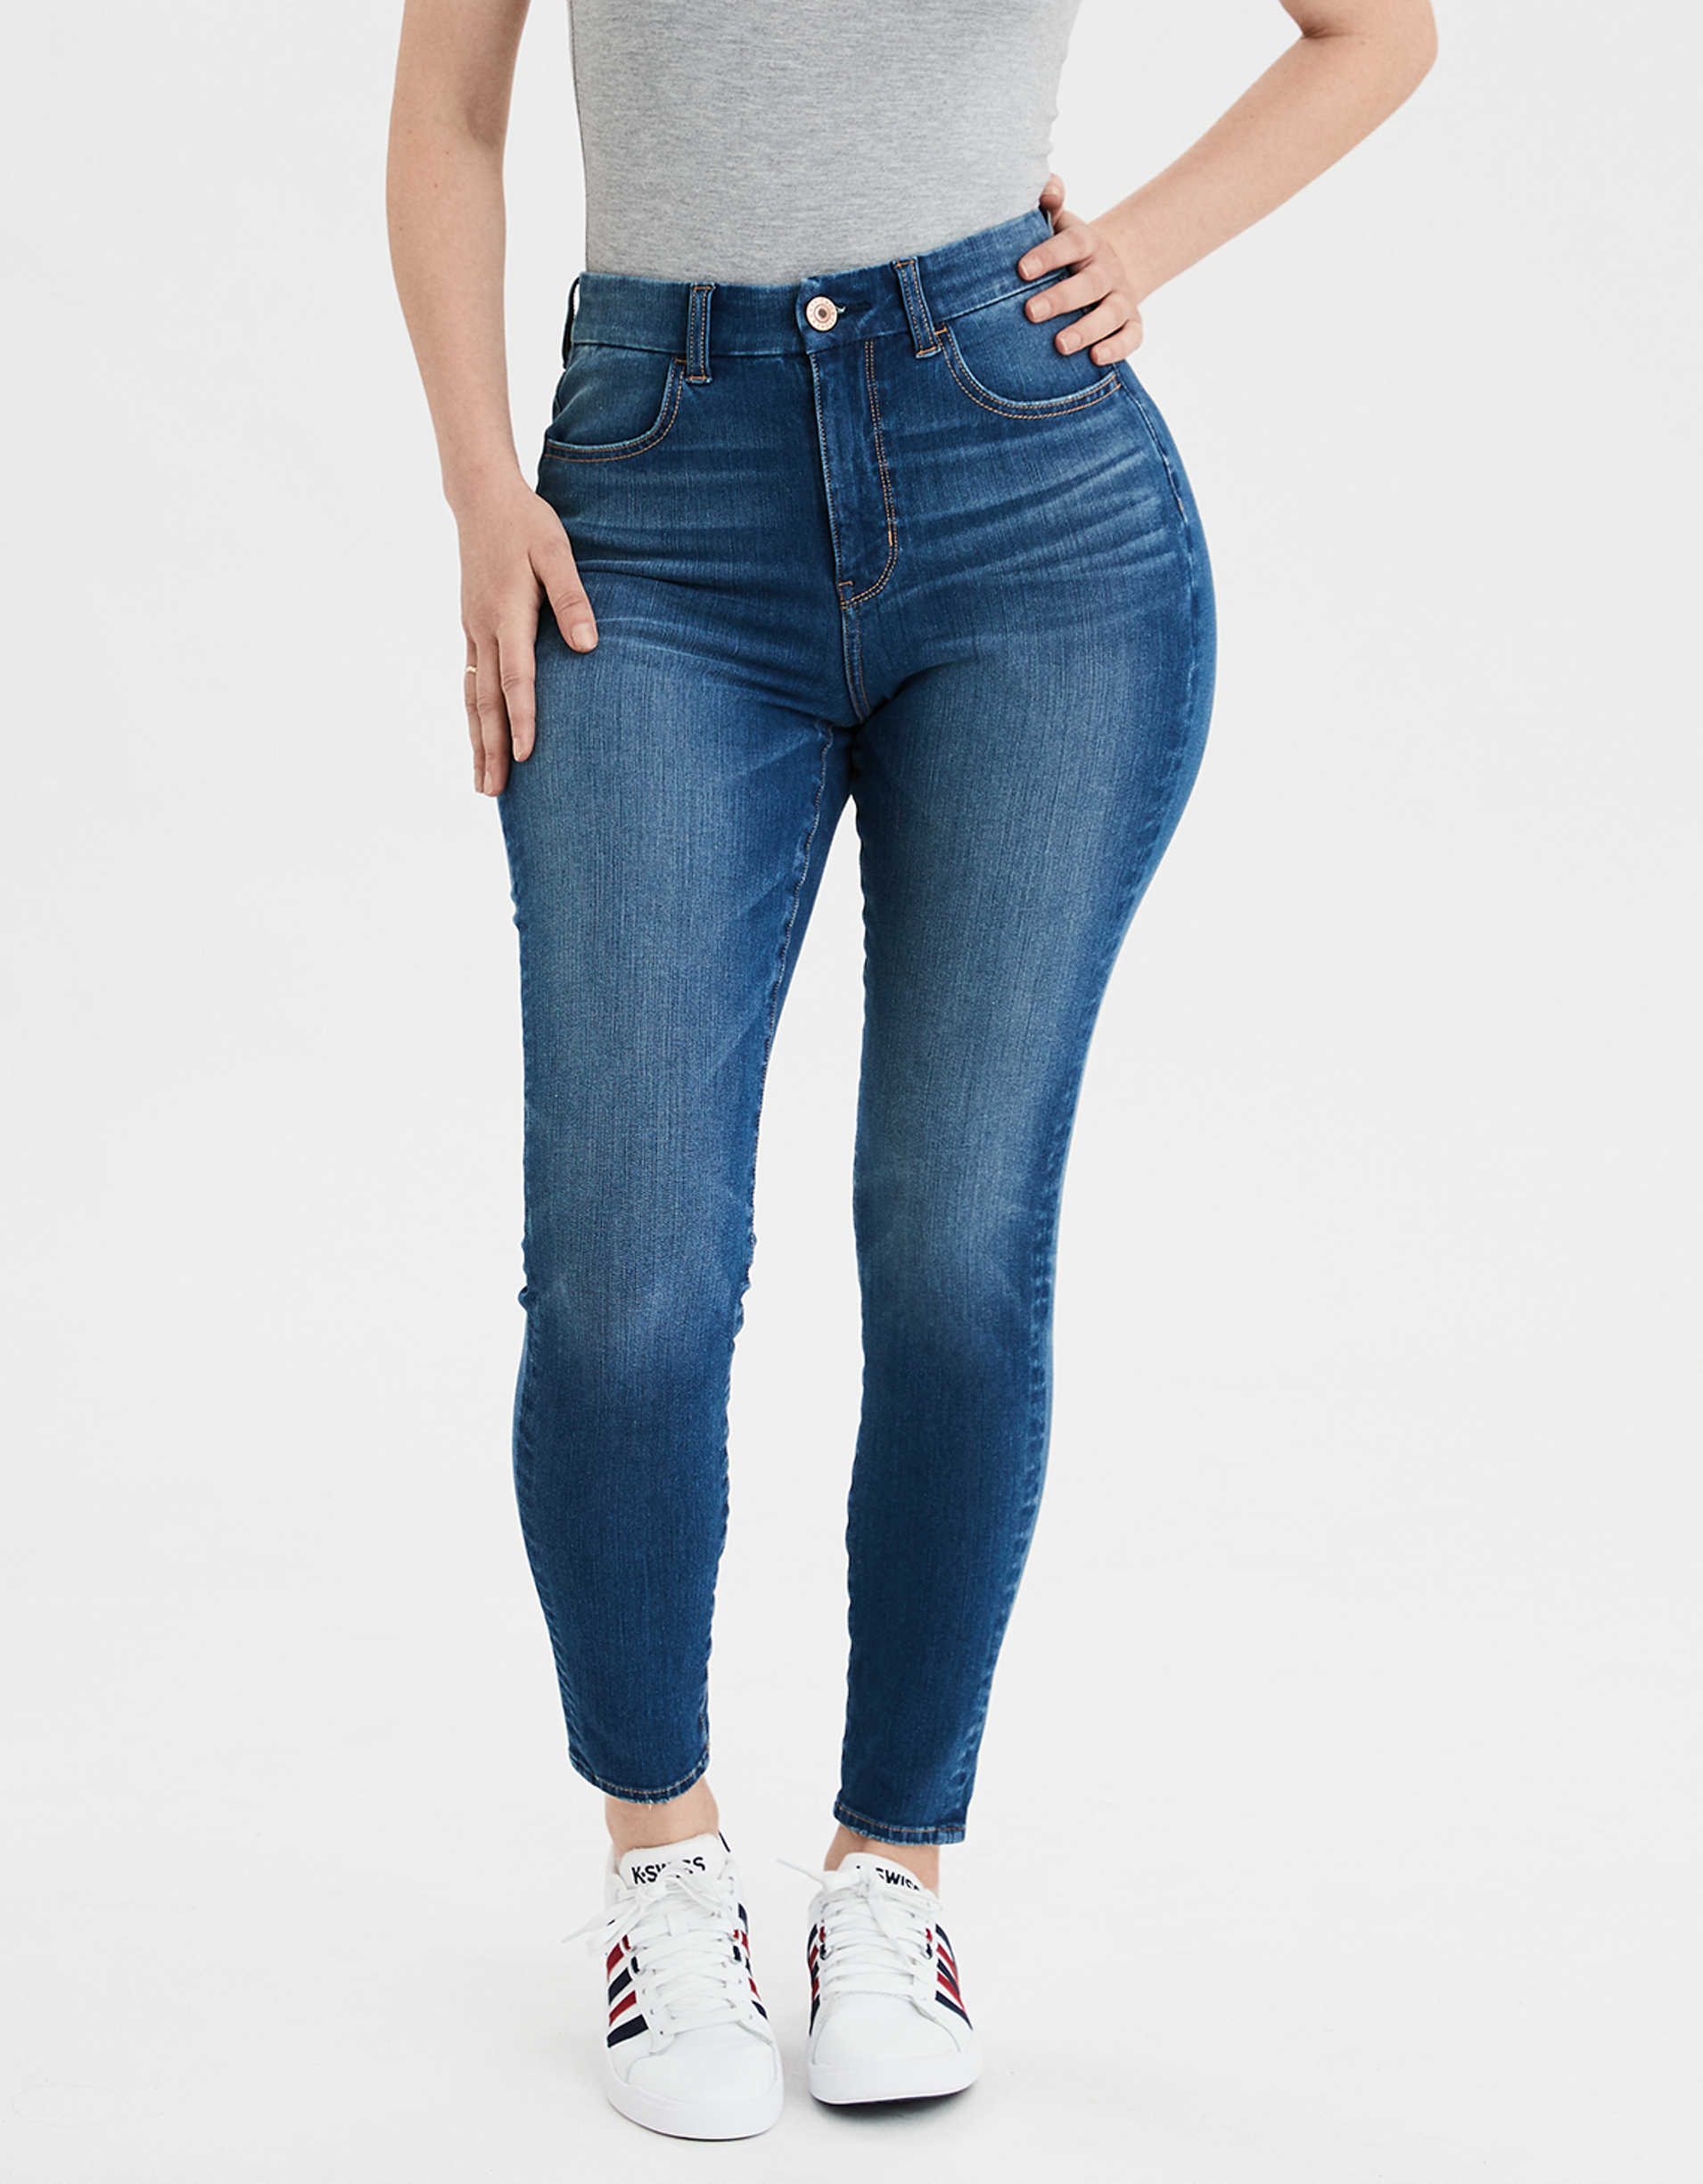 The Dream Jean Curvy High-Waisted Jegging